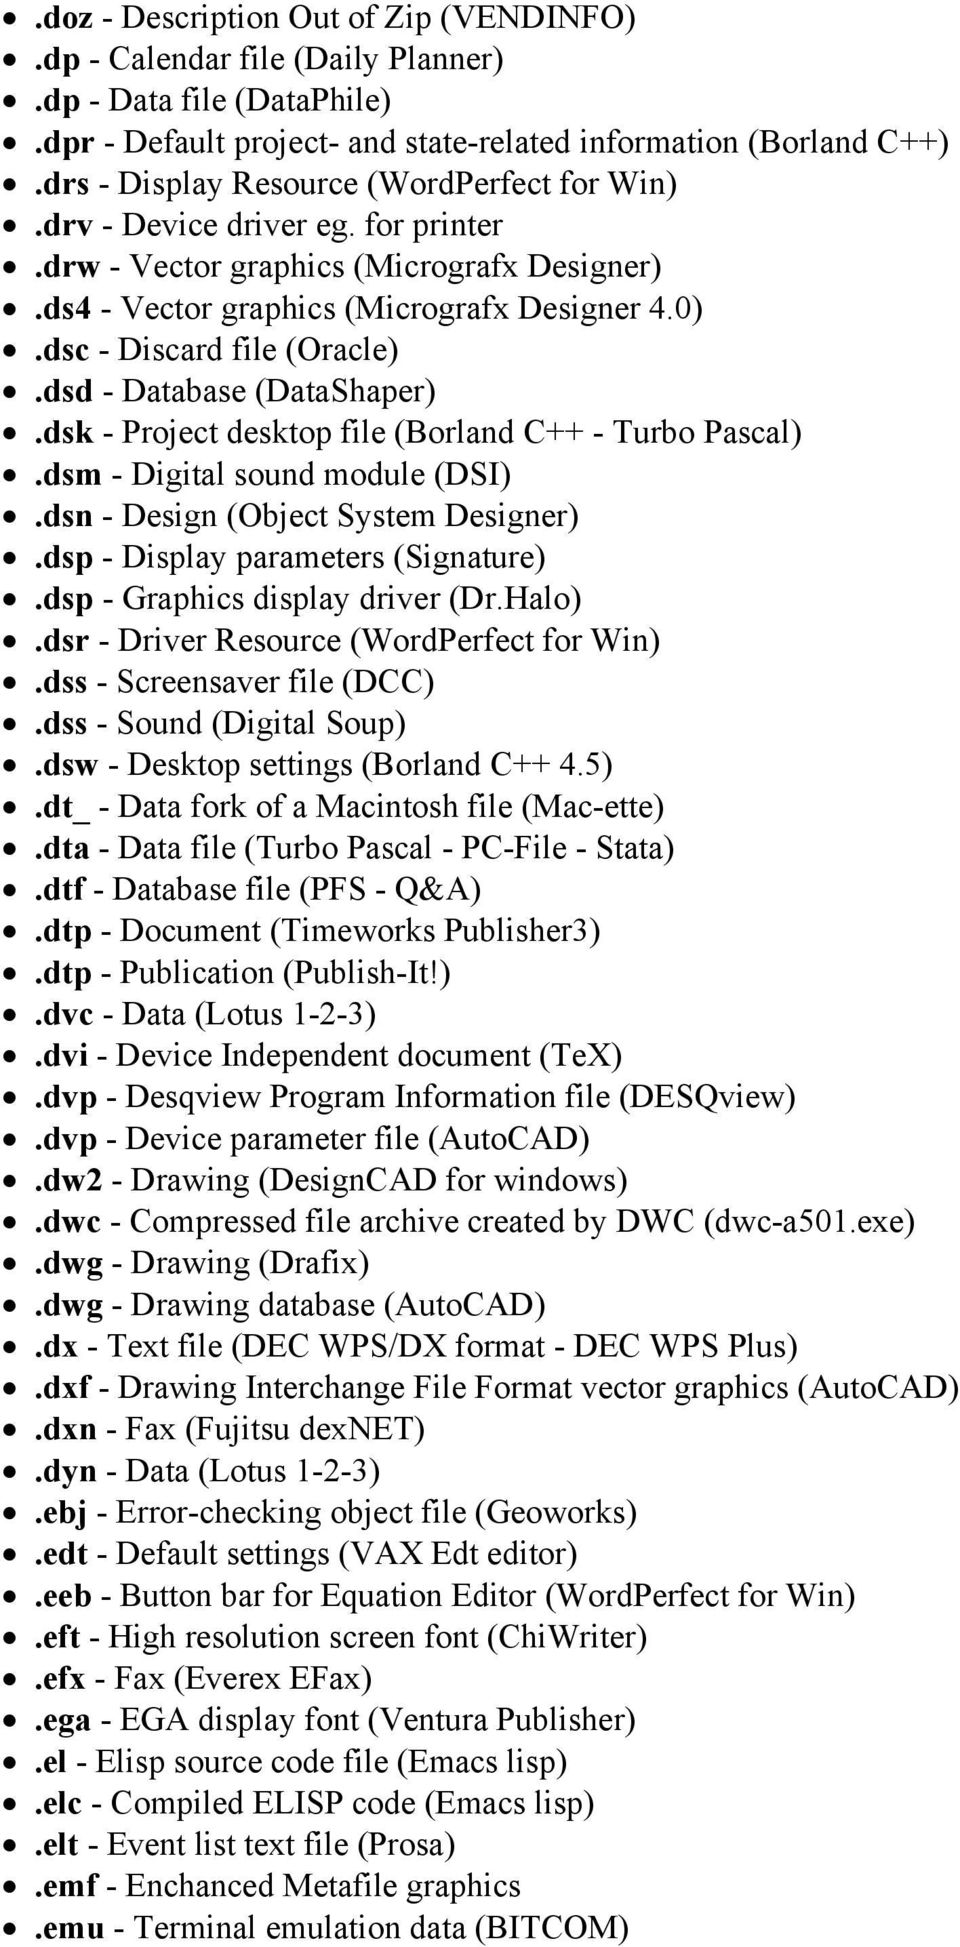 dsc - Discard file (Oracle).dsd - Database (DataShaper).dsk - Project desktop file (Borland C++ - Turbo Pascal).dsm - Digital sound module (DSI).dsn - Design (Object System Designer).